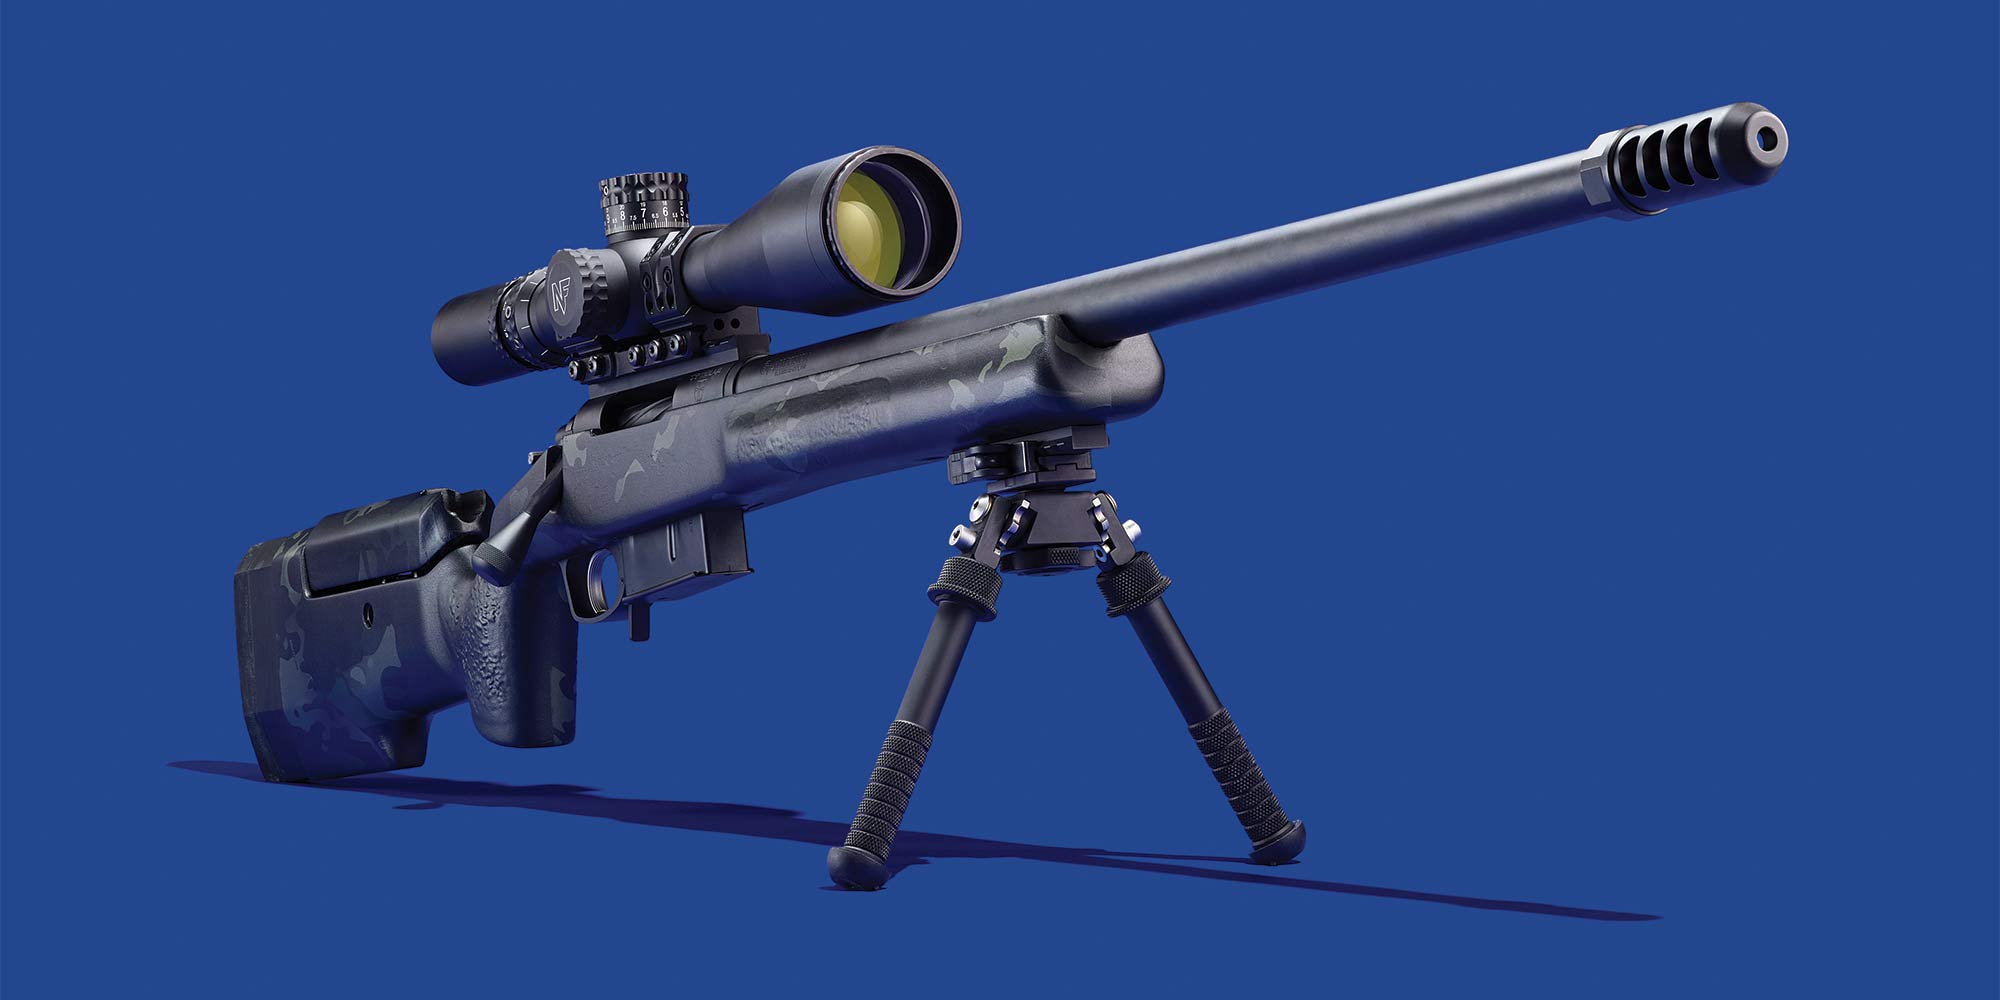 ga precision rifle on a blue background